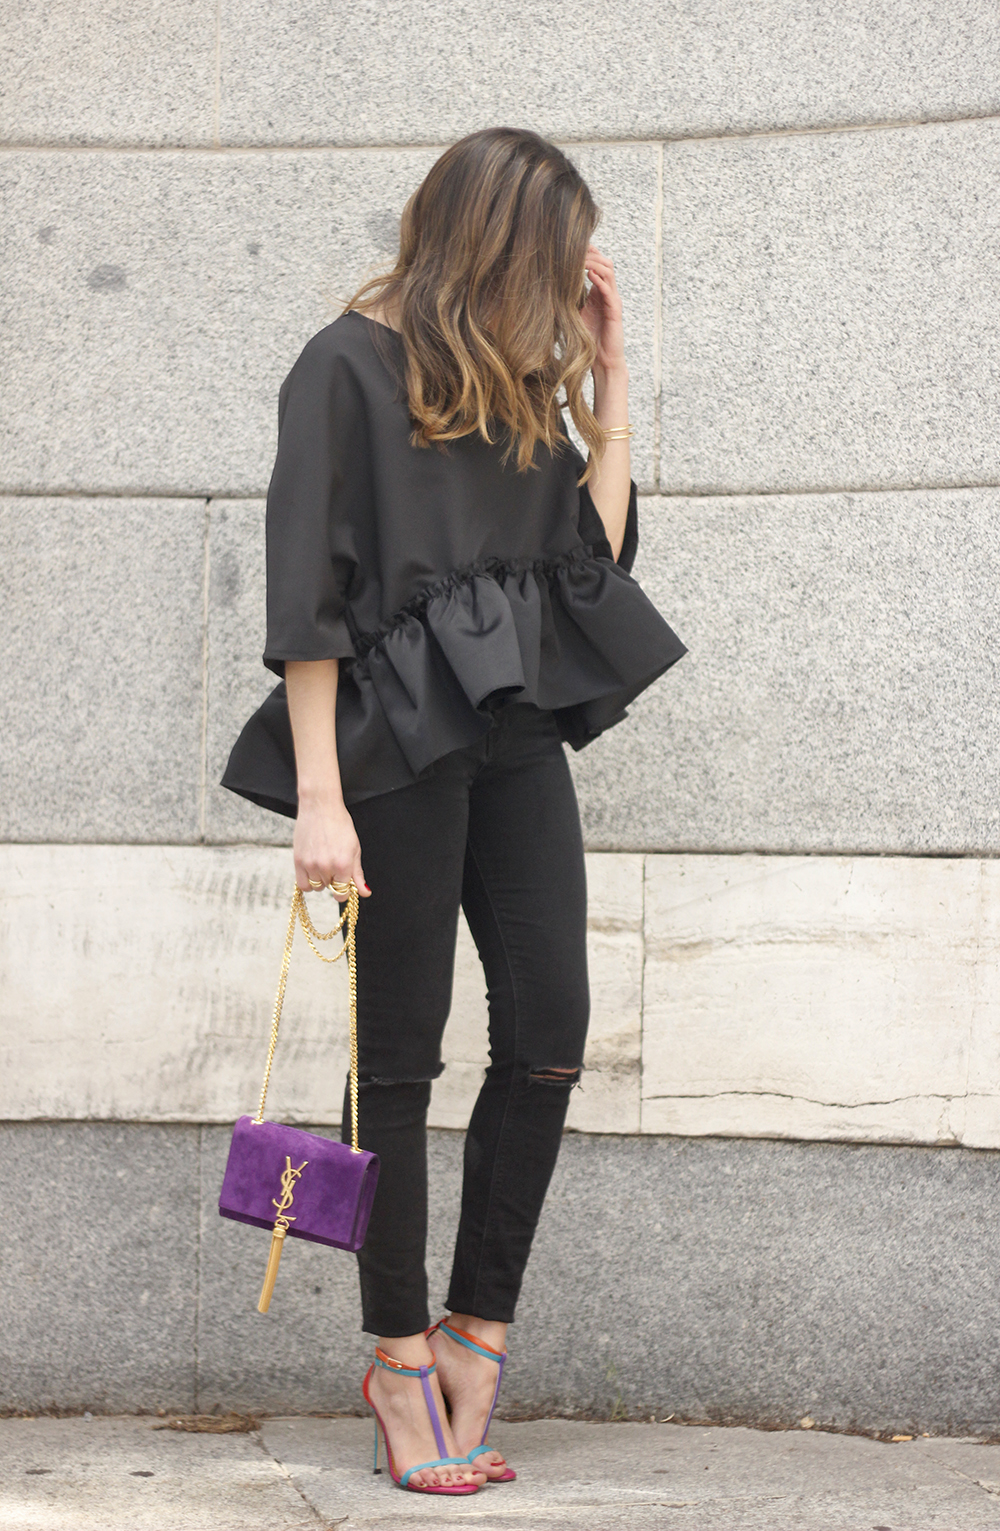 black top with a ruffle Carolina Herrera Sandals YSL bag accessories outfit style03